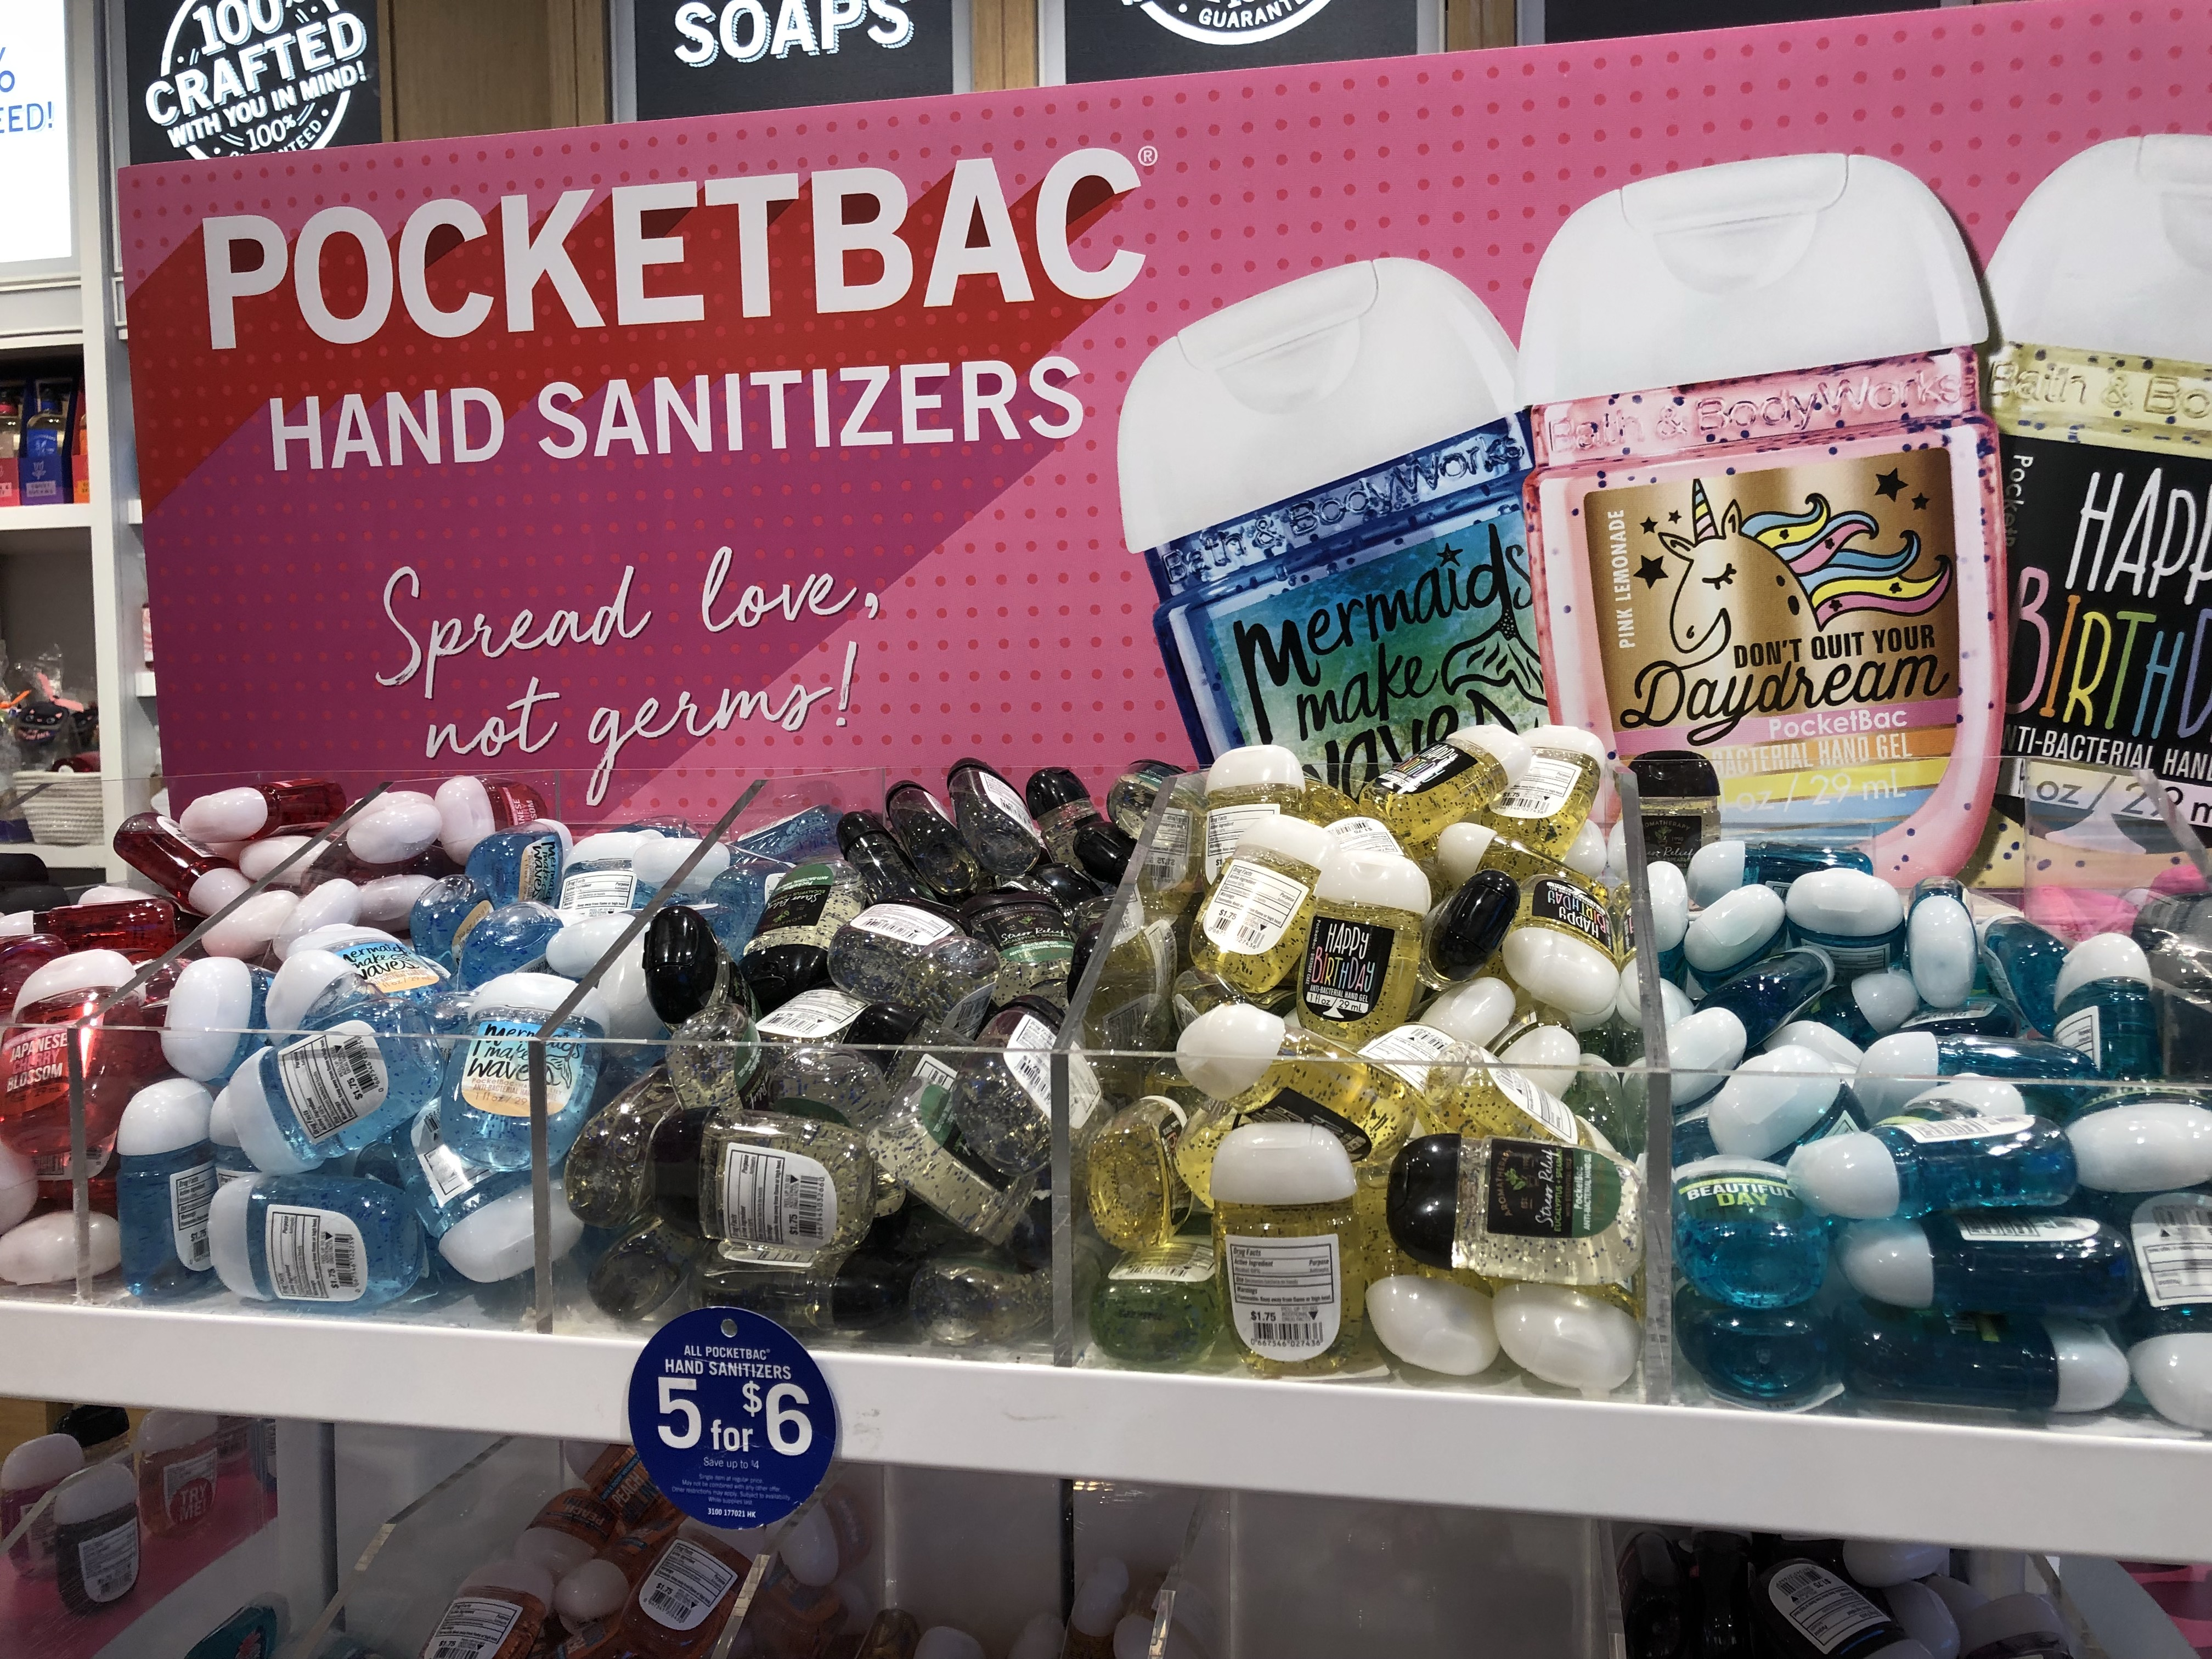 Know The Best Ways To Use Free Product Coupons 16 Secrets For Saving Big At Bath Body Works